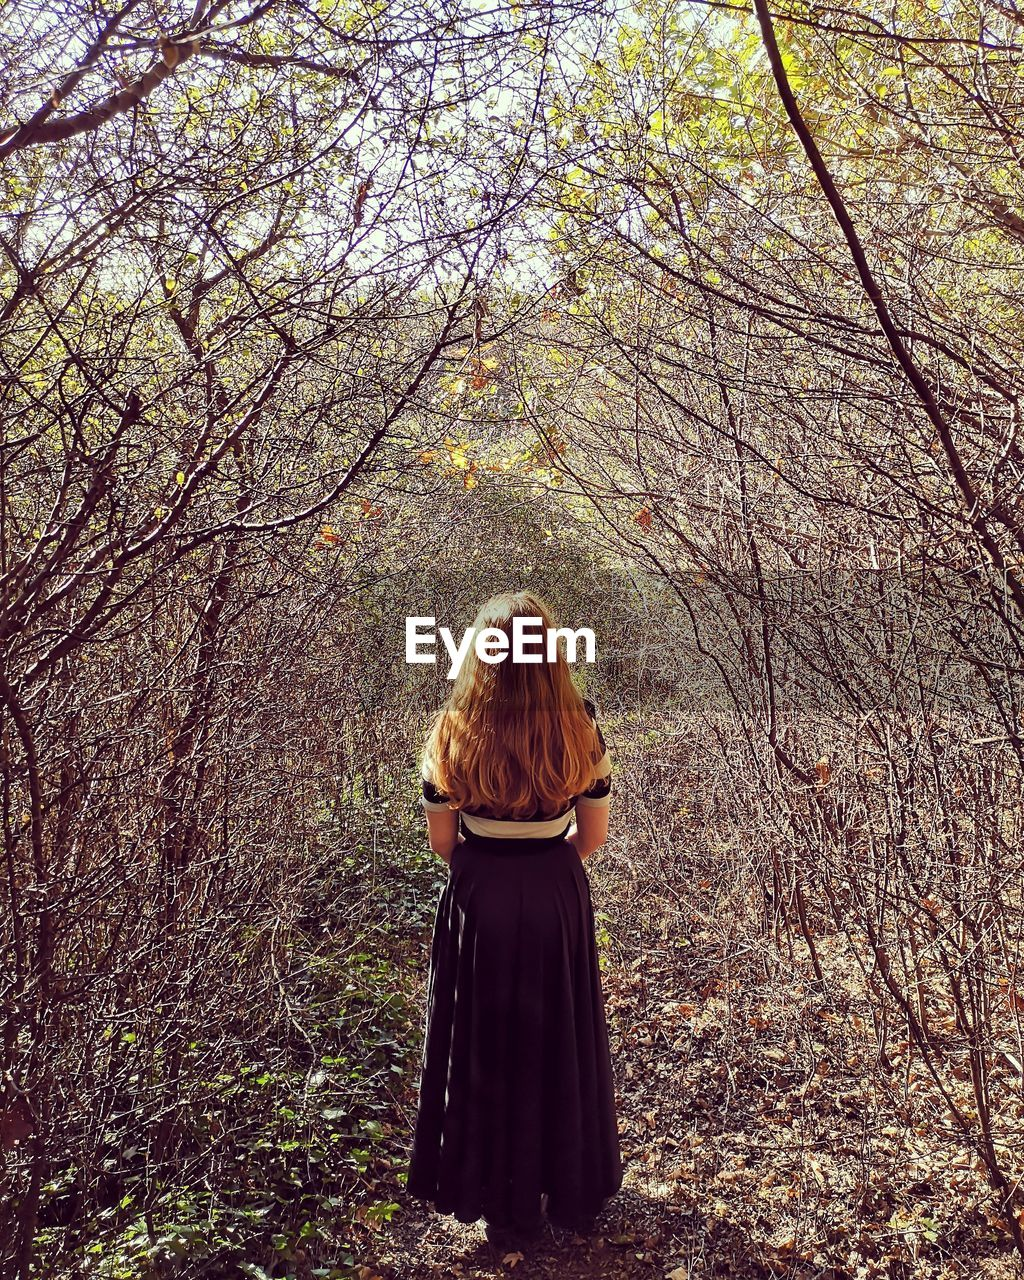 tree, one person, plant, rear view, real people, leisure activity, lifestyles, hairstyle, forest, hair, women, standing, land, nature, adult, long hair, day, growth, branch, outdoors, woodland